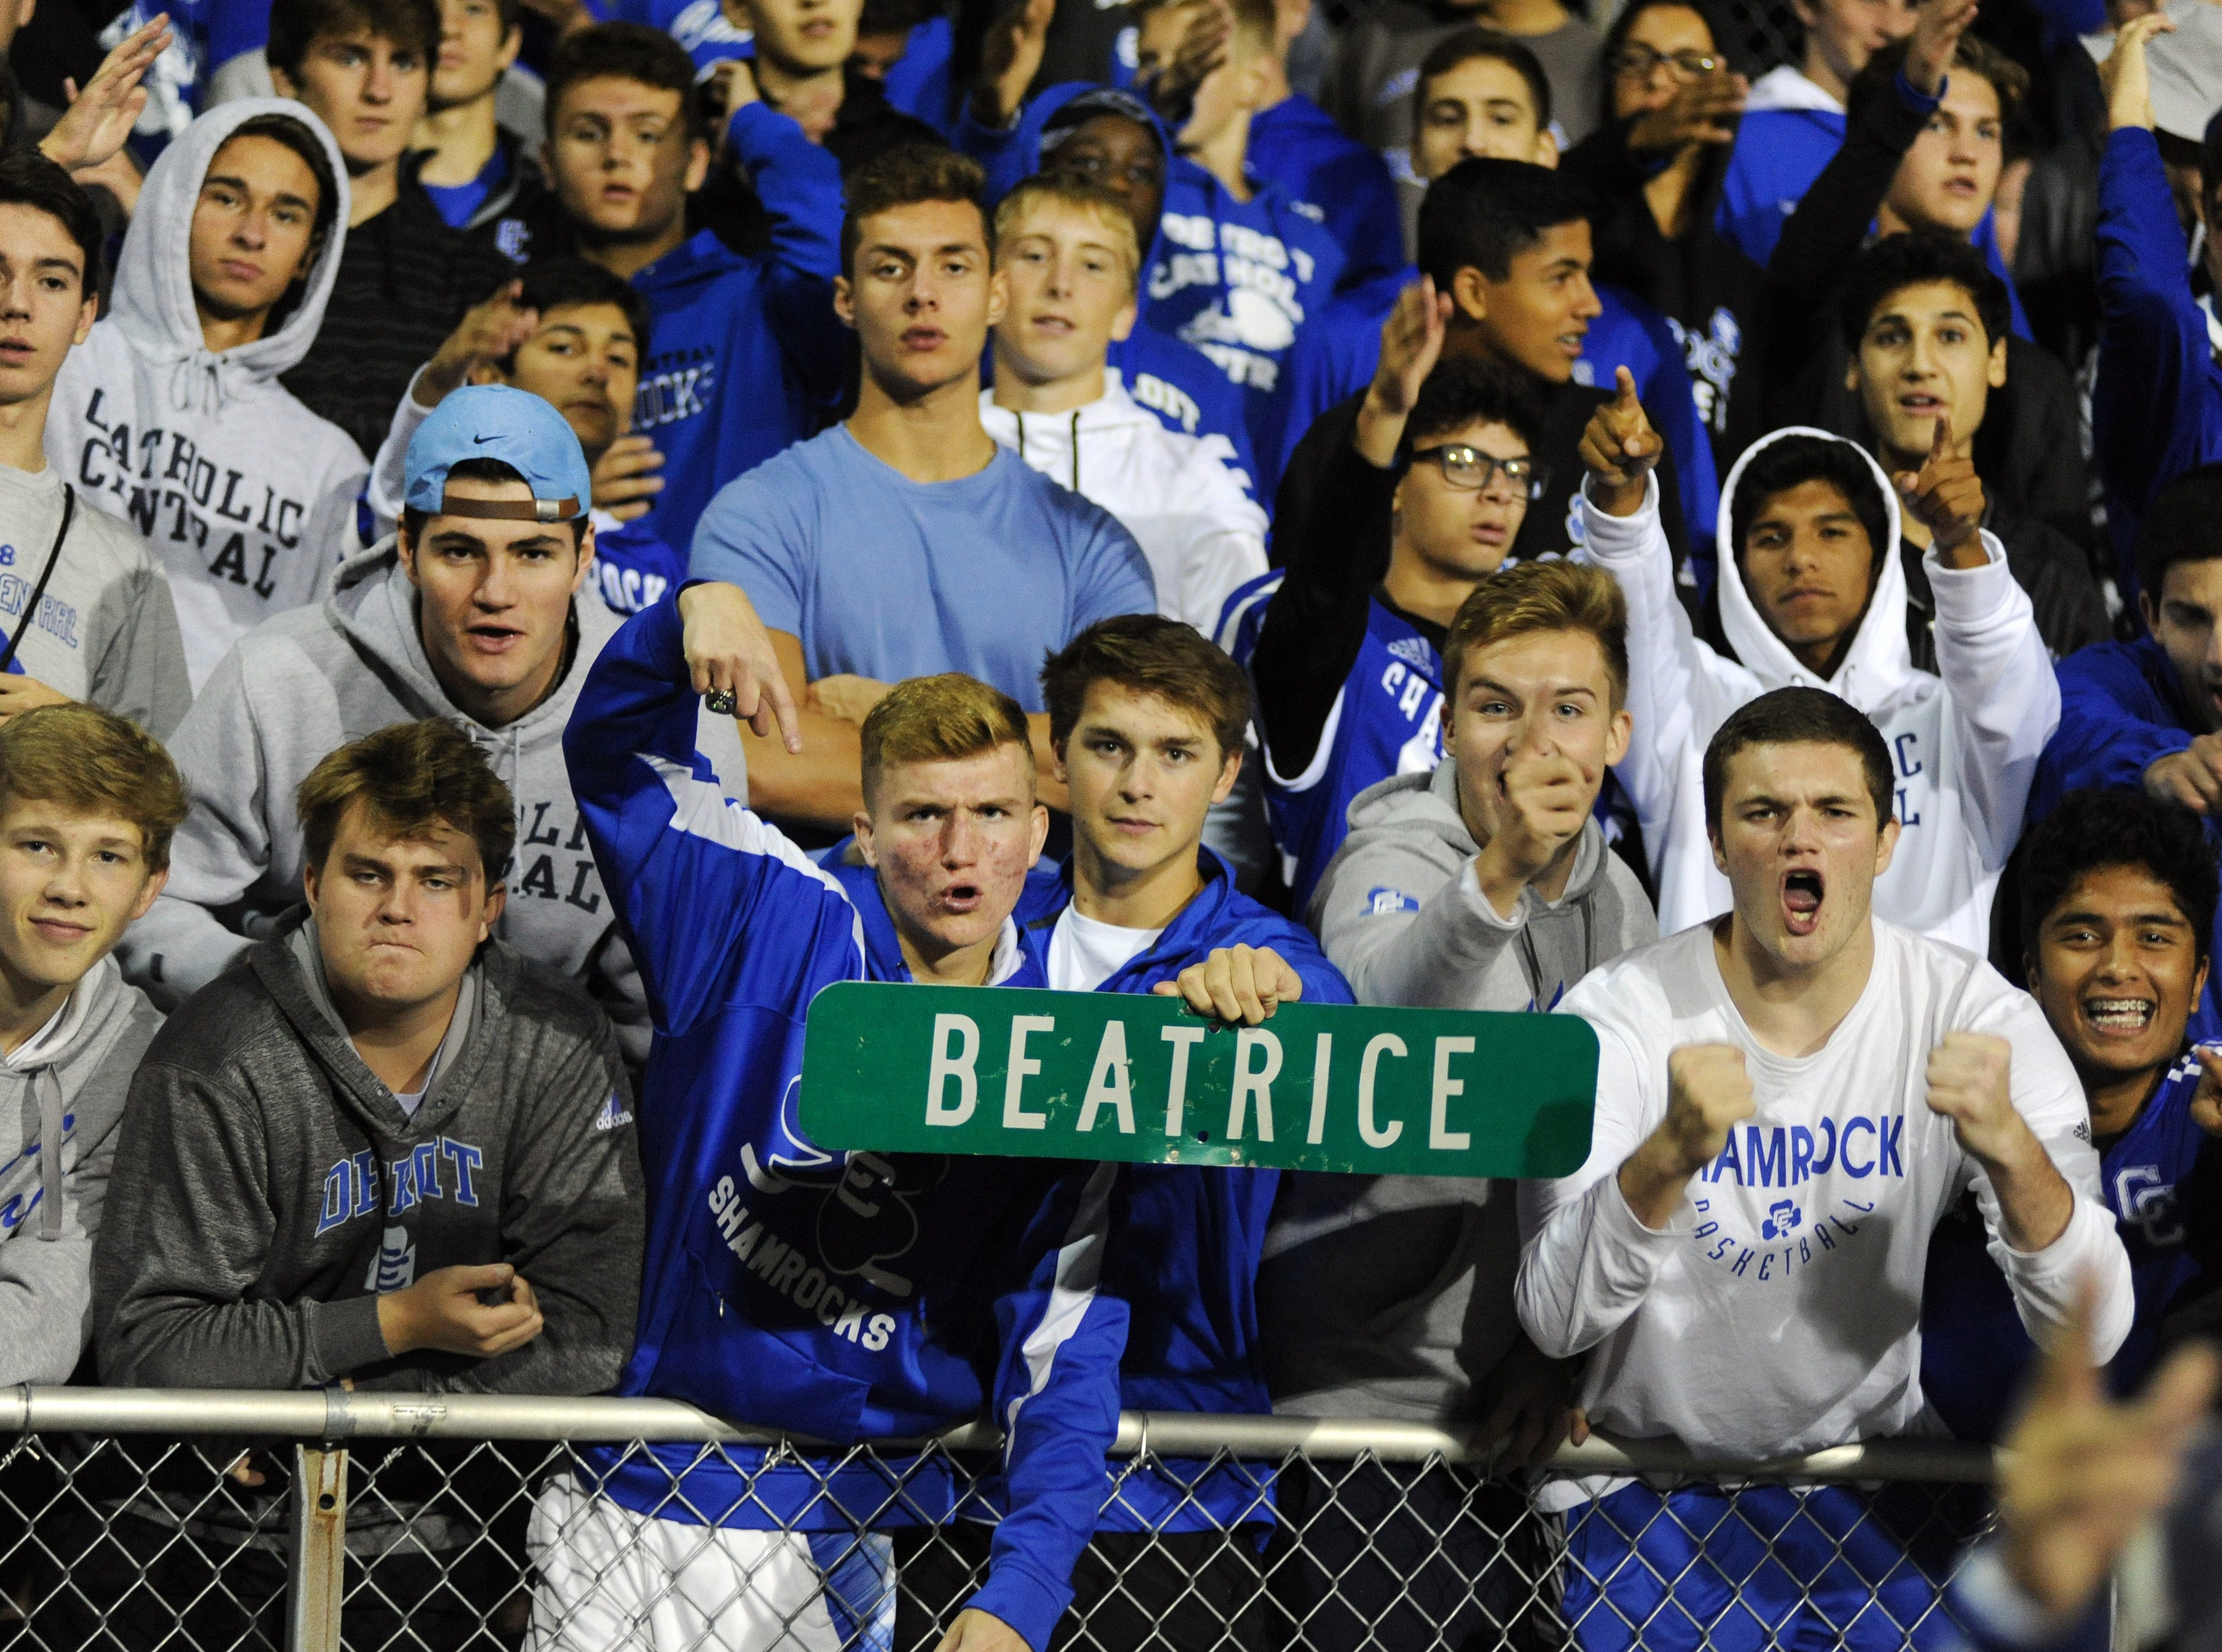 """Detroit Catholic Central students show off a Beatrice street sign as their team played against Birmingham Brother Rice in the third quarter, Saturday, Sept. 22, 2018 at Hurley Field in Berkley, Mich.  Catholic Central defeated Brother Rice, 21-0.  Catholic Central previously played their home games in Redford on a field along Beatrice Street, and Beatrice also spells out as """"BEAT RICE""""; to the delight of the student fanbase."""